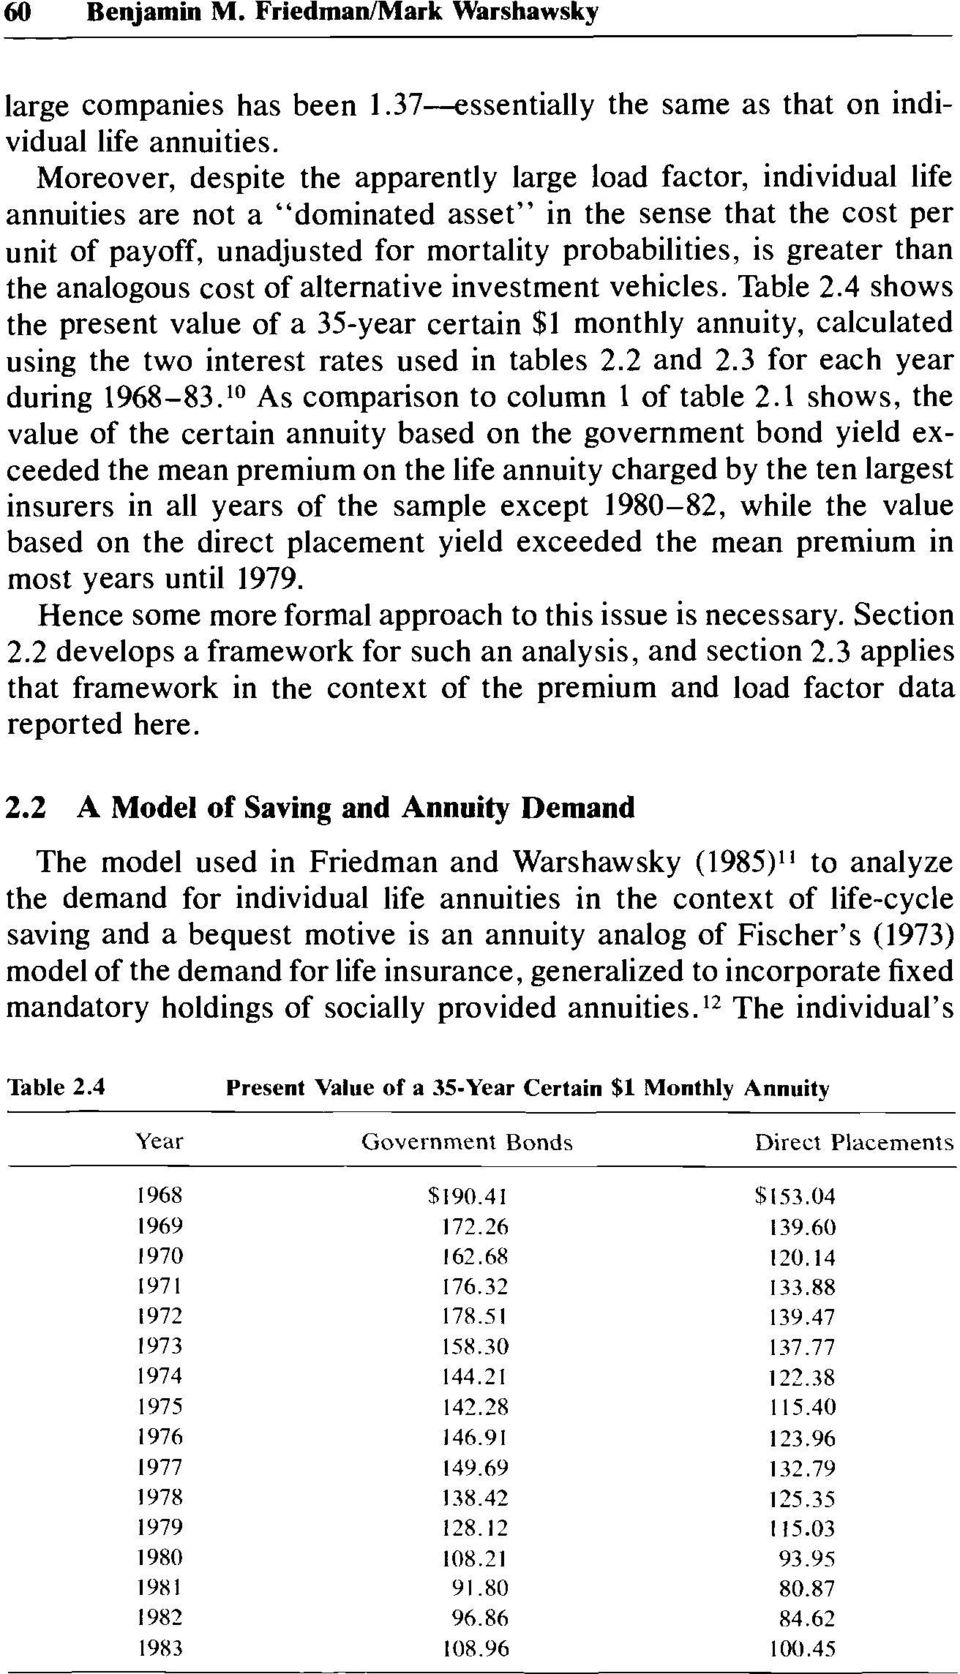 greater than the analogous cost of alternative investment vehicles. Table 2.4 shows the present value of a 35-year certain $1 monthly annuity, calculated using the two interest rates used in tables 2.